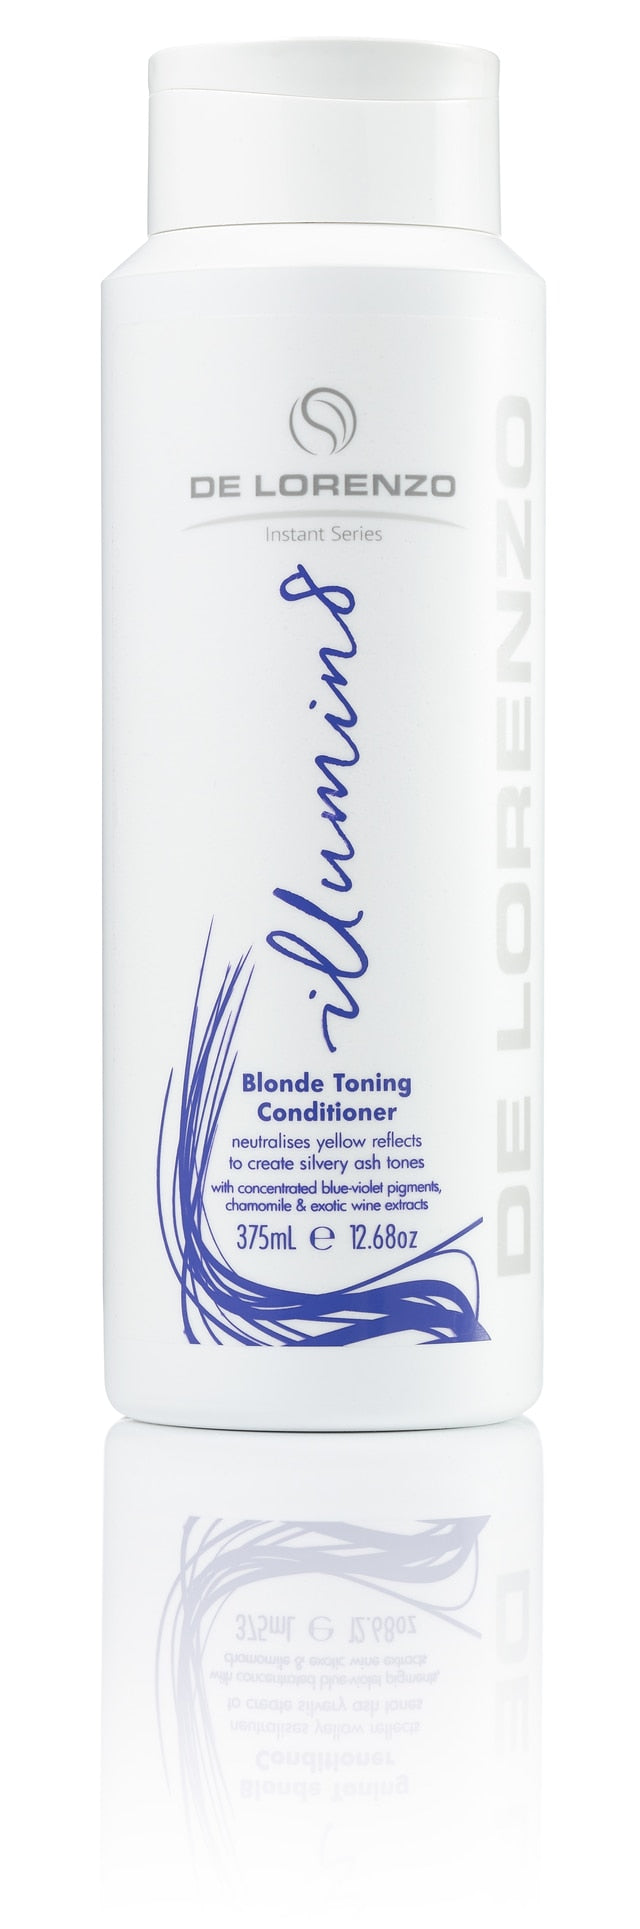 DE LORENZO Illumin8 Conditioner